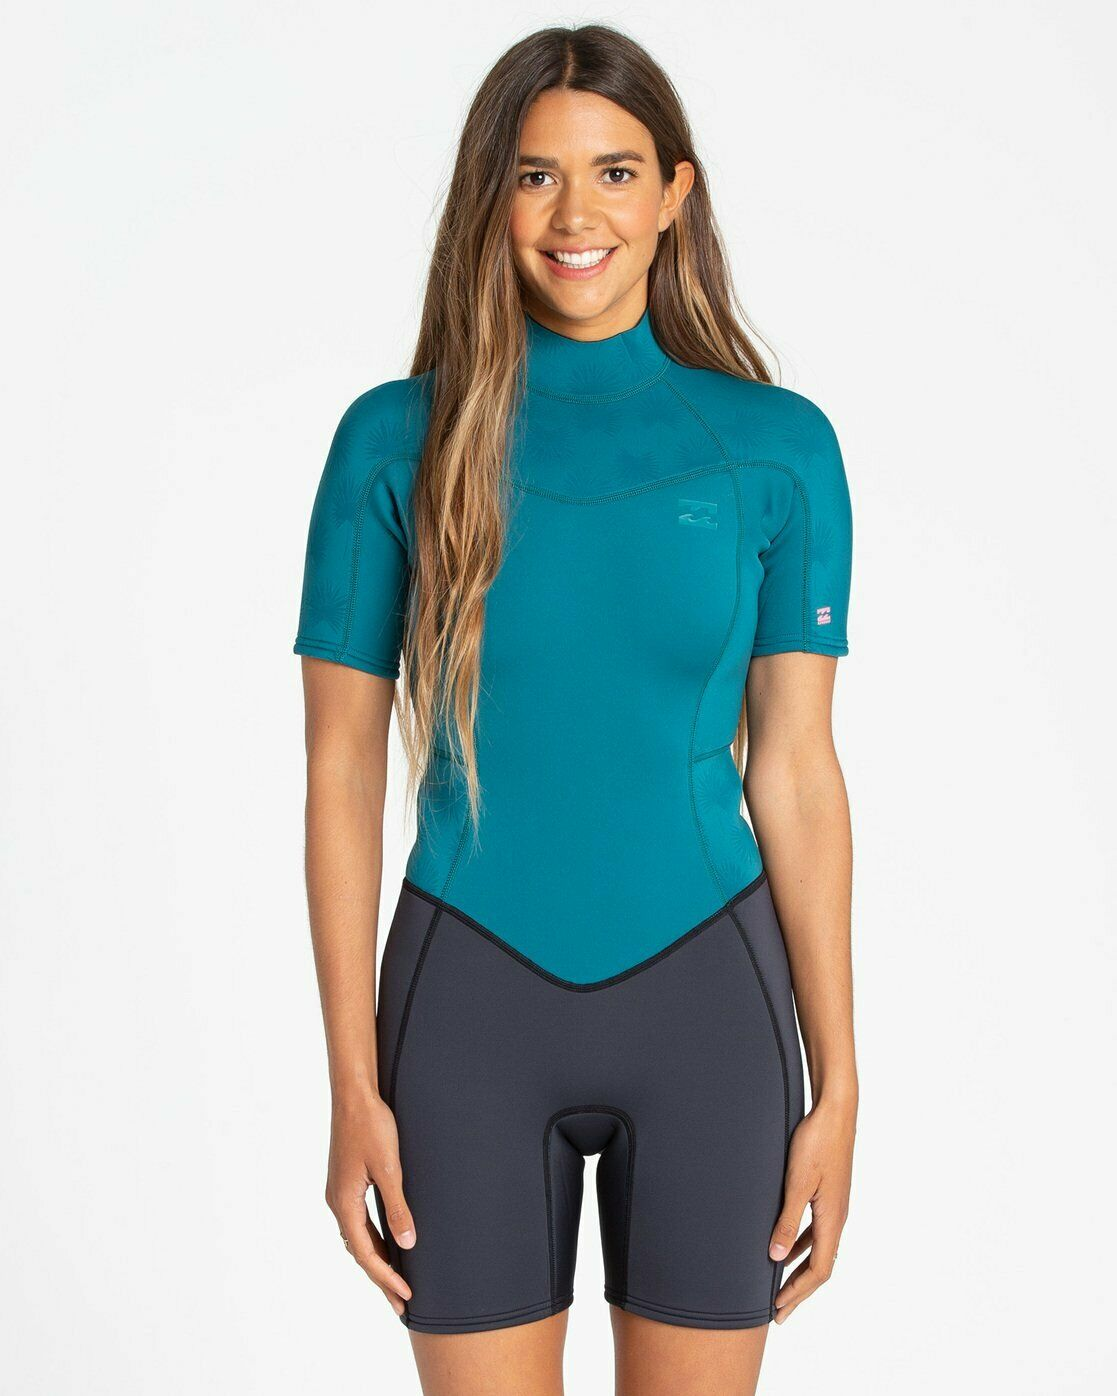 Billabong Synergy  2mm Springsuit Wetsuit - Women's - 8, Pacific  factory direct and quick delivery